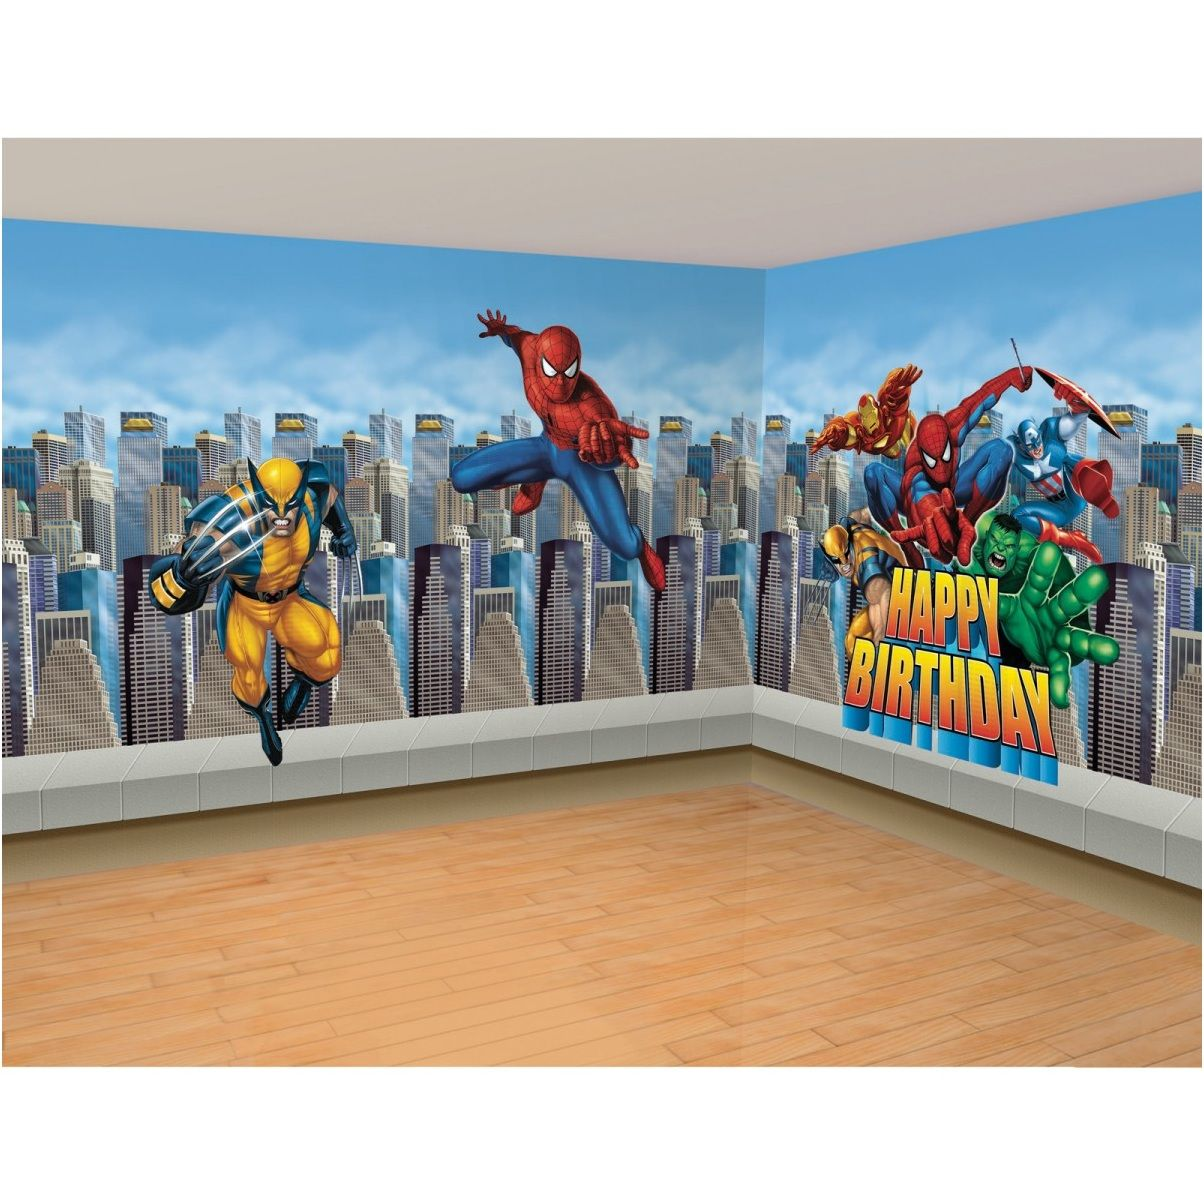 Marvel Themed Room Cool Marvel Super Hero Bedroom Wall Decal Ideas  My Favs  Pinterest Inspiration Design